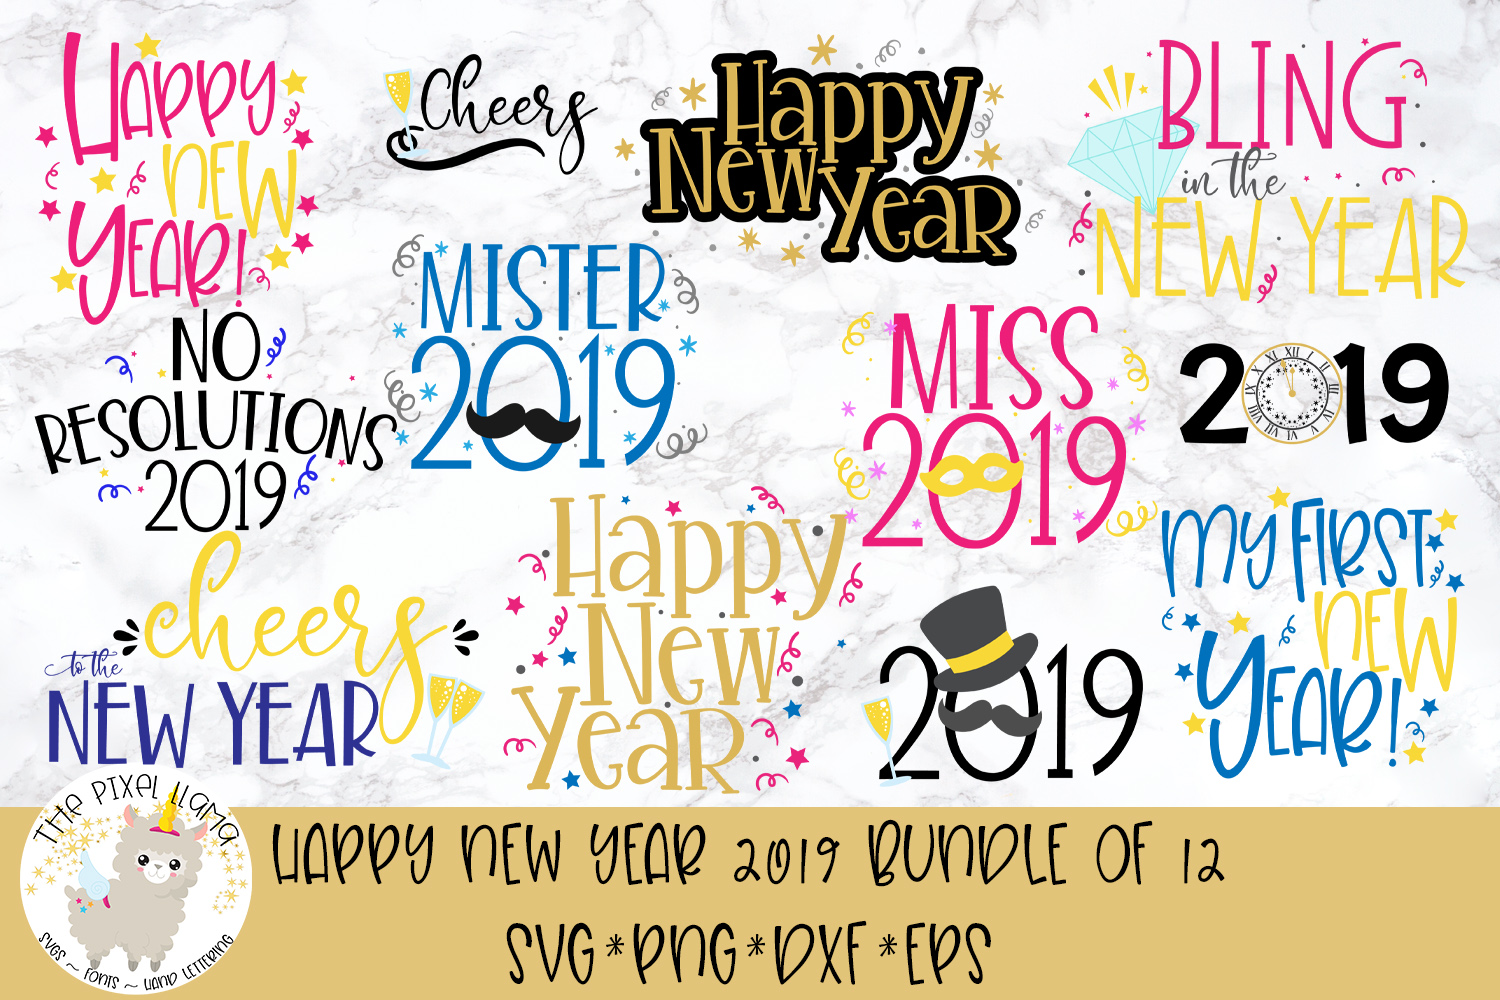 New Year 2019 Bundle of 12 Files SVG Cut File example image 1